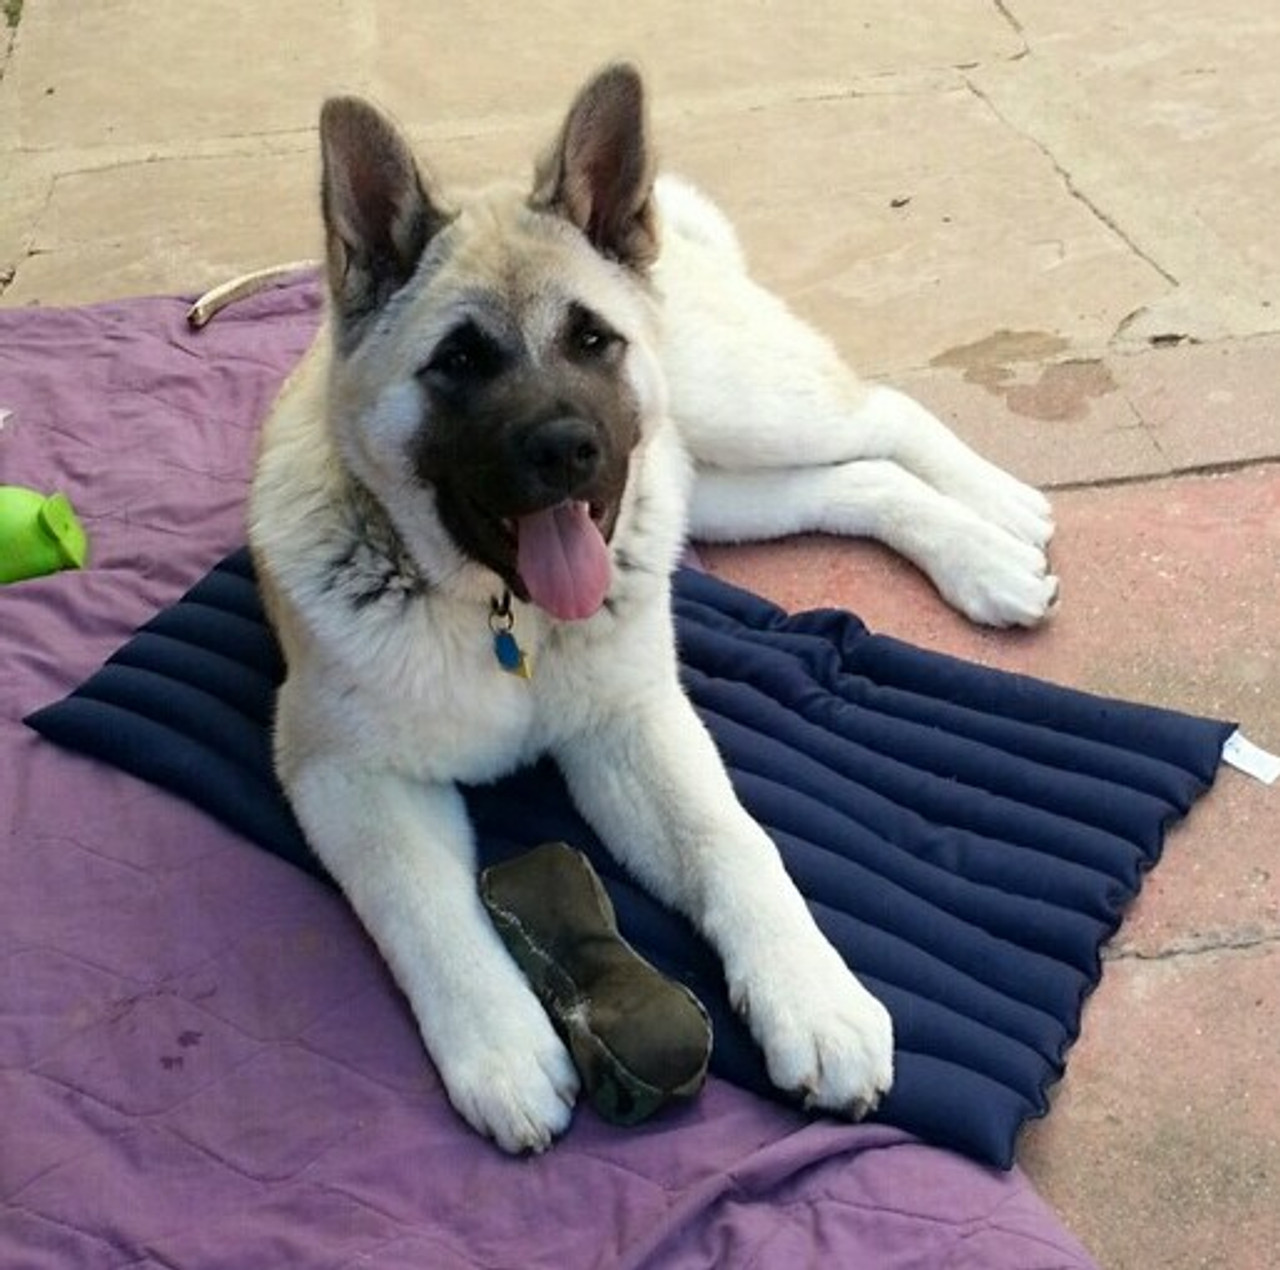 Cool kennel pad for a cool spot - without digging!